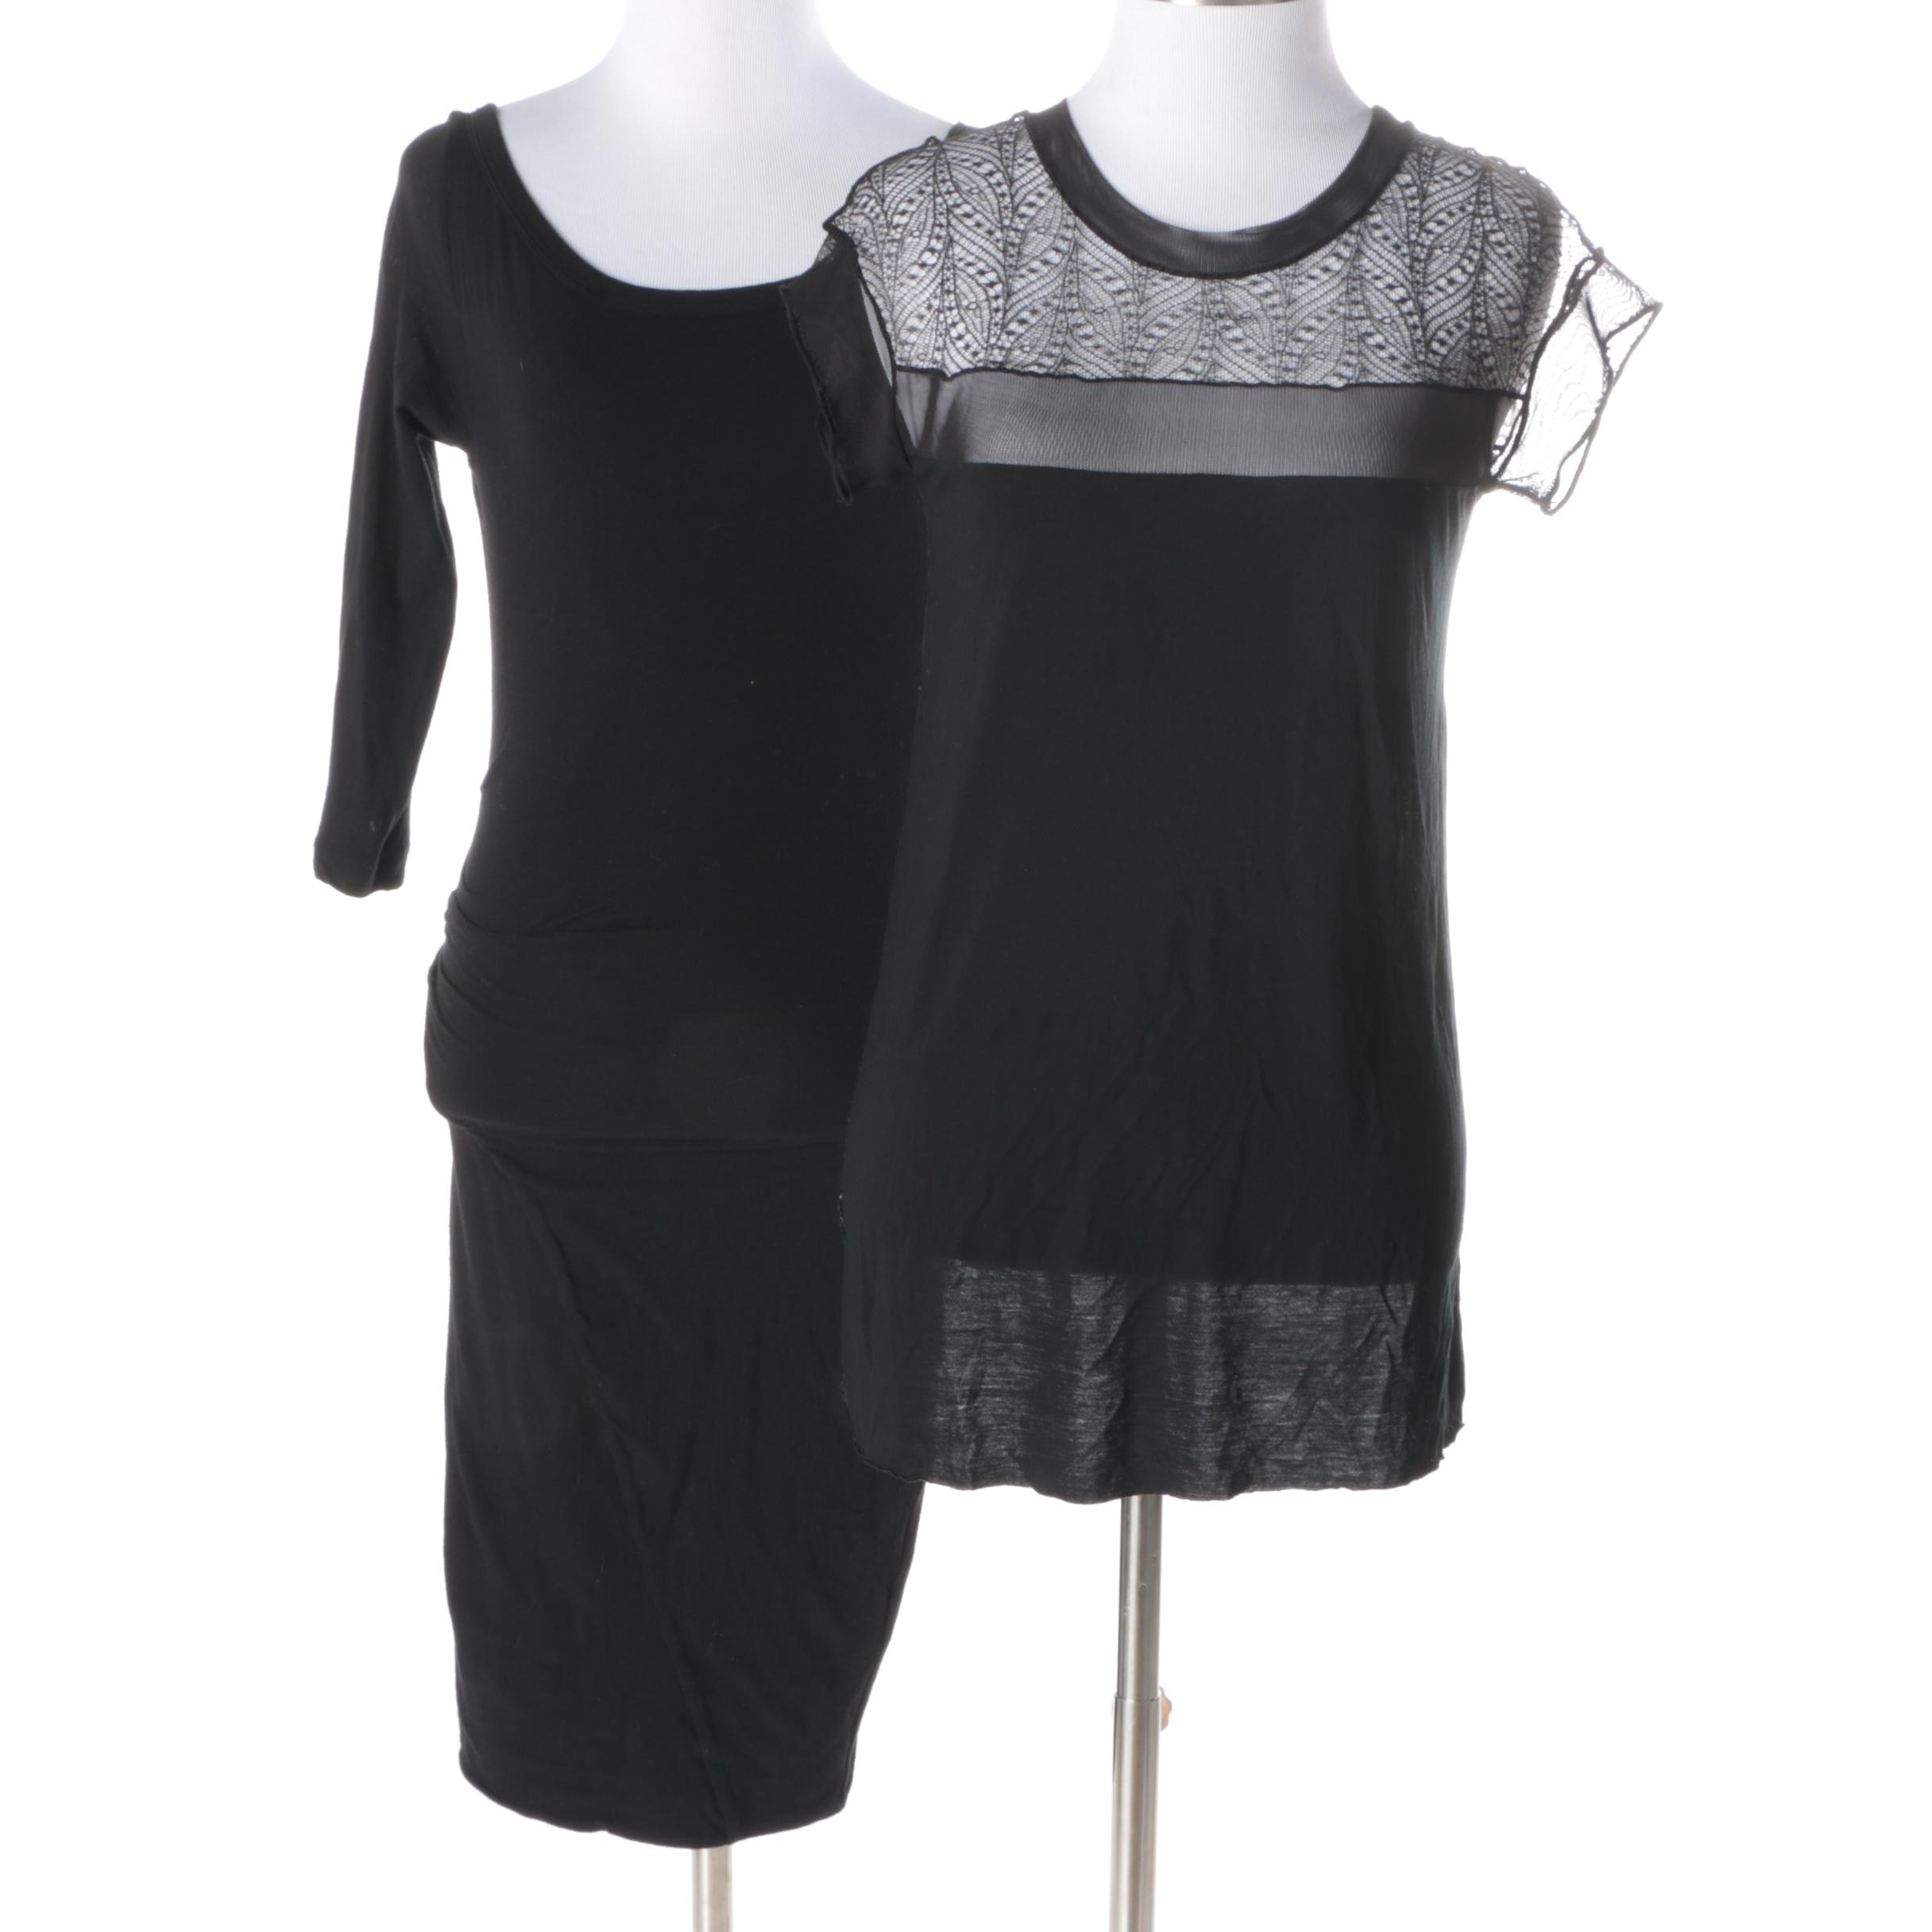 Standard James Perse Knit Dress and BCBG Max Azria Lace Top